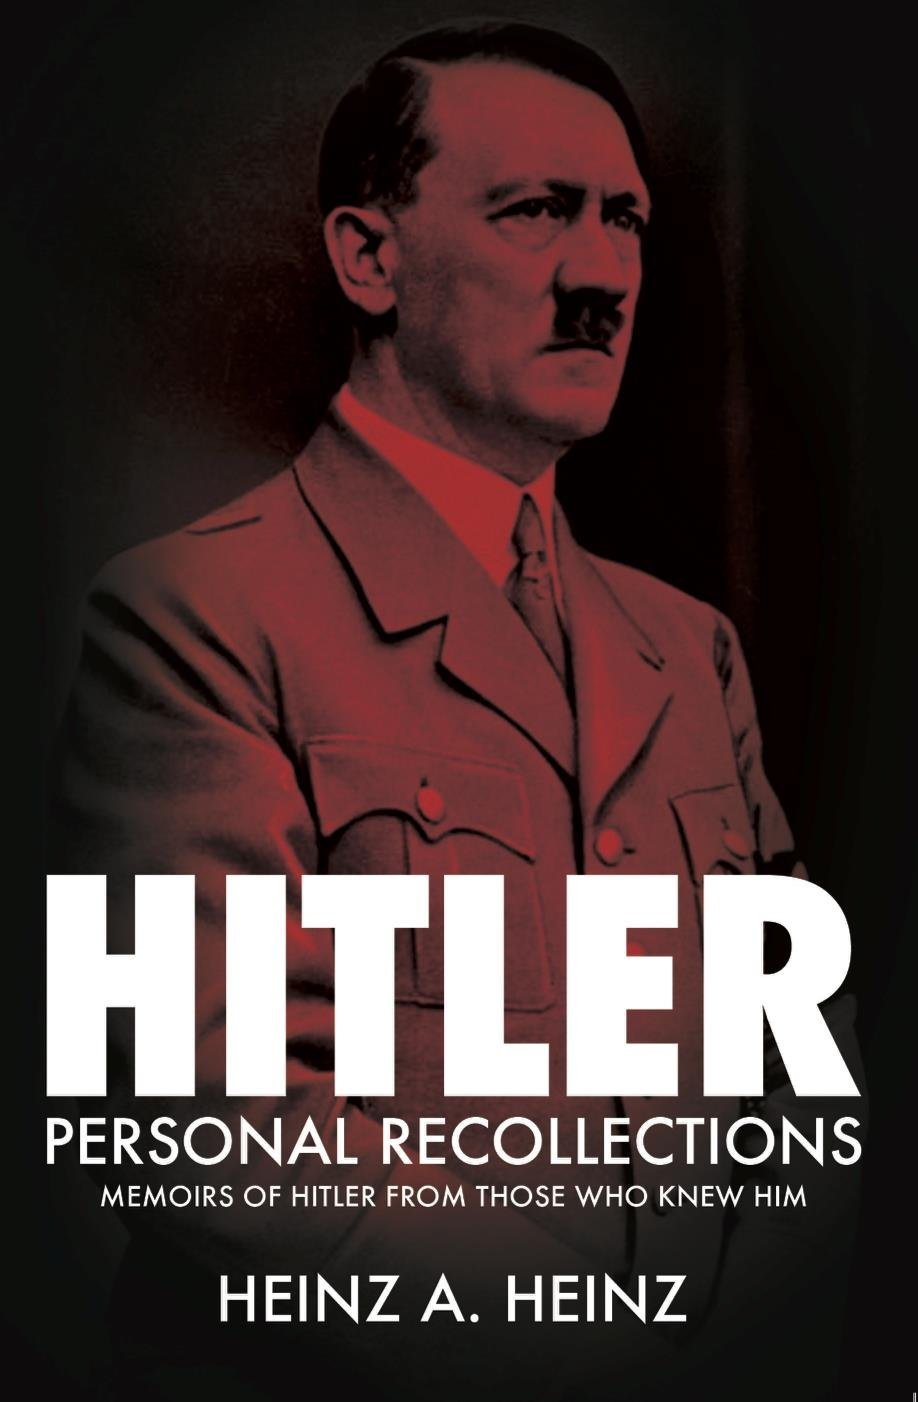 Hitler - Personal Recollections: Memoirs of Hitler From Those Who Knew Him free download